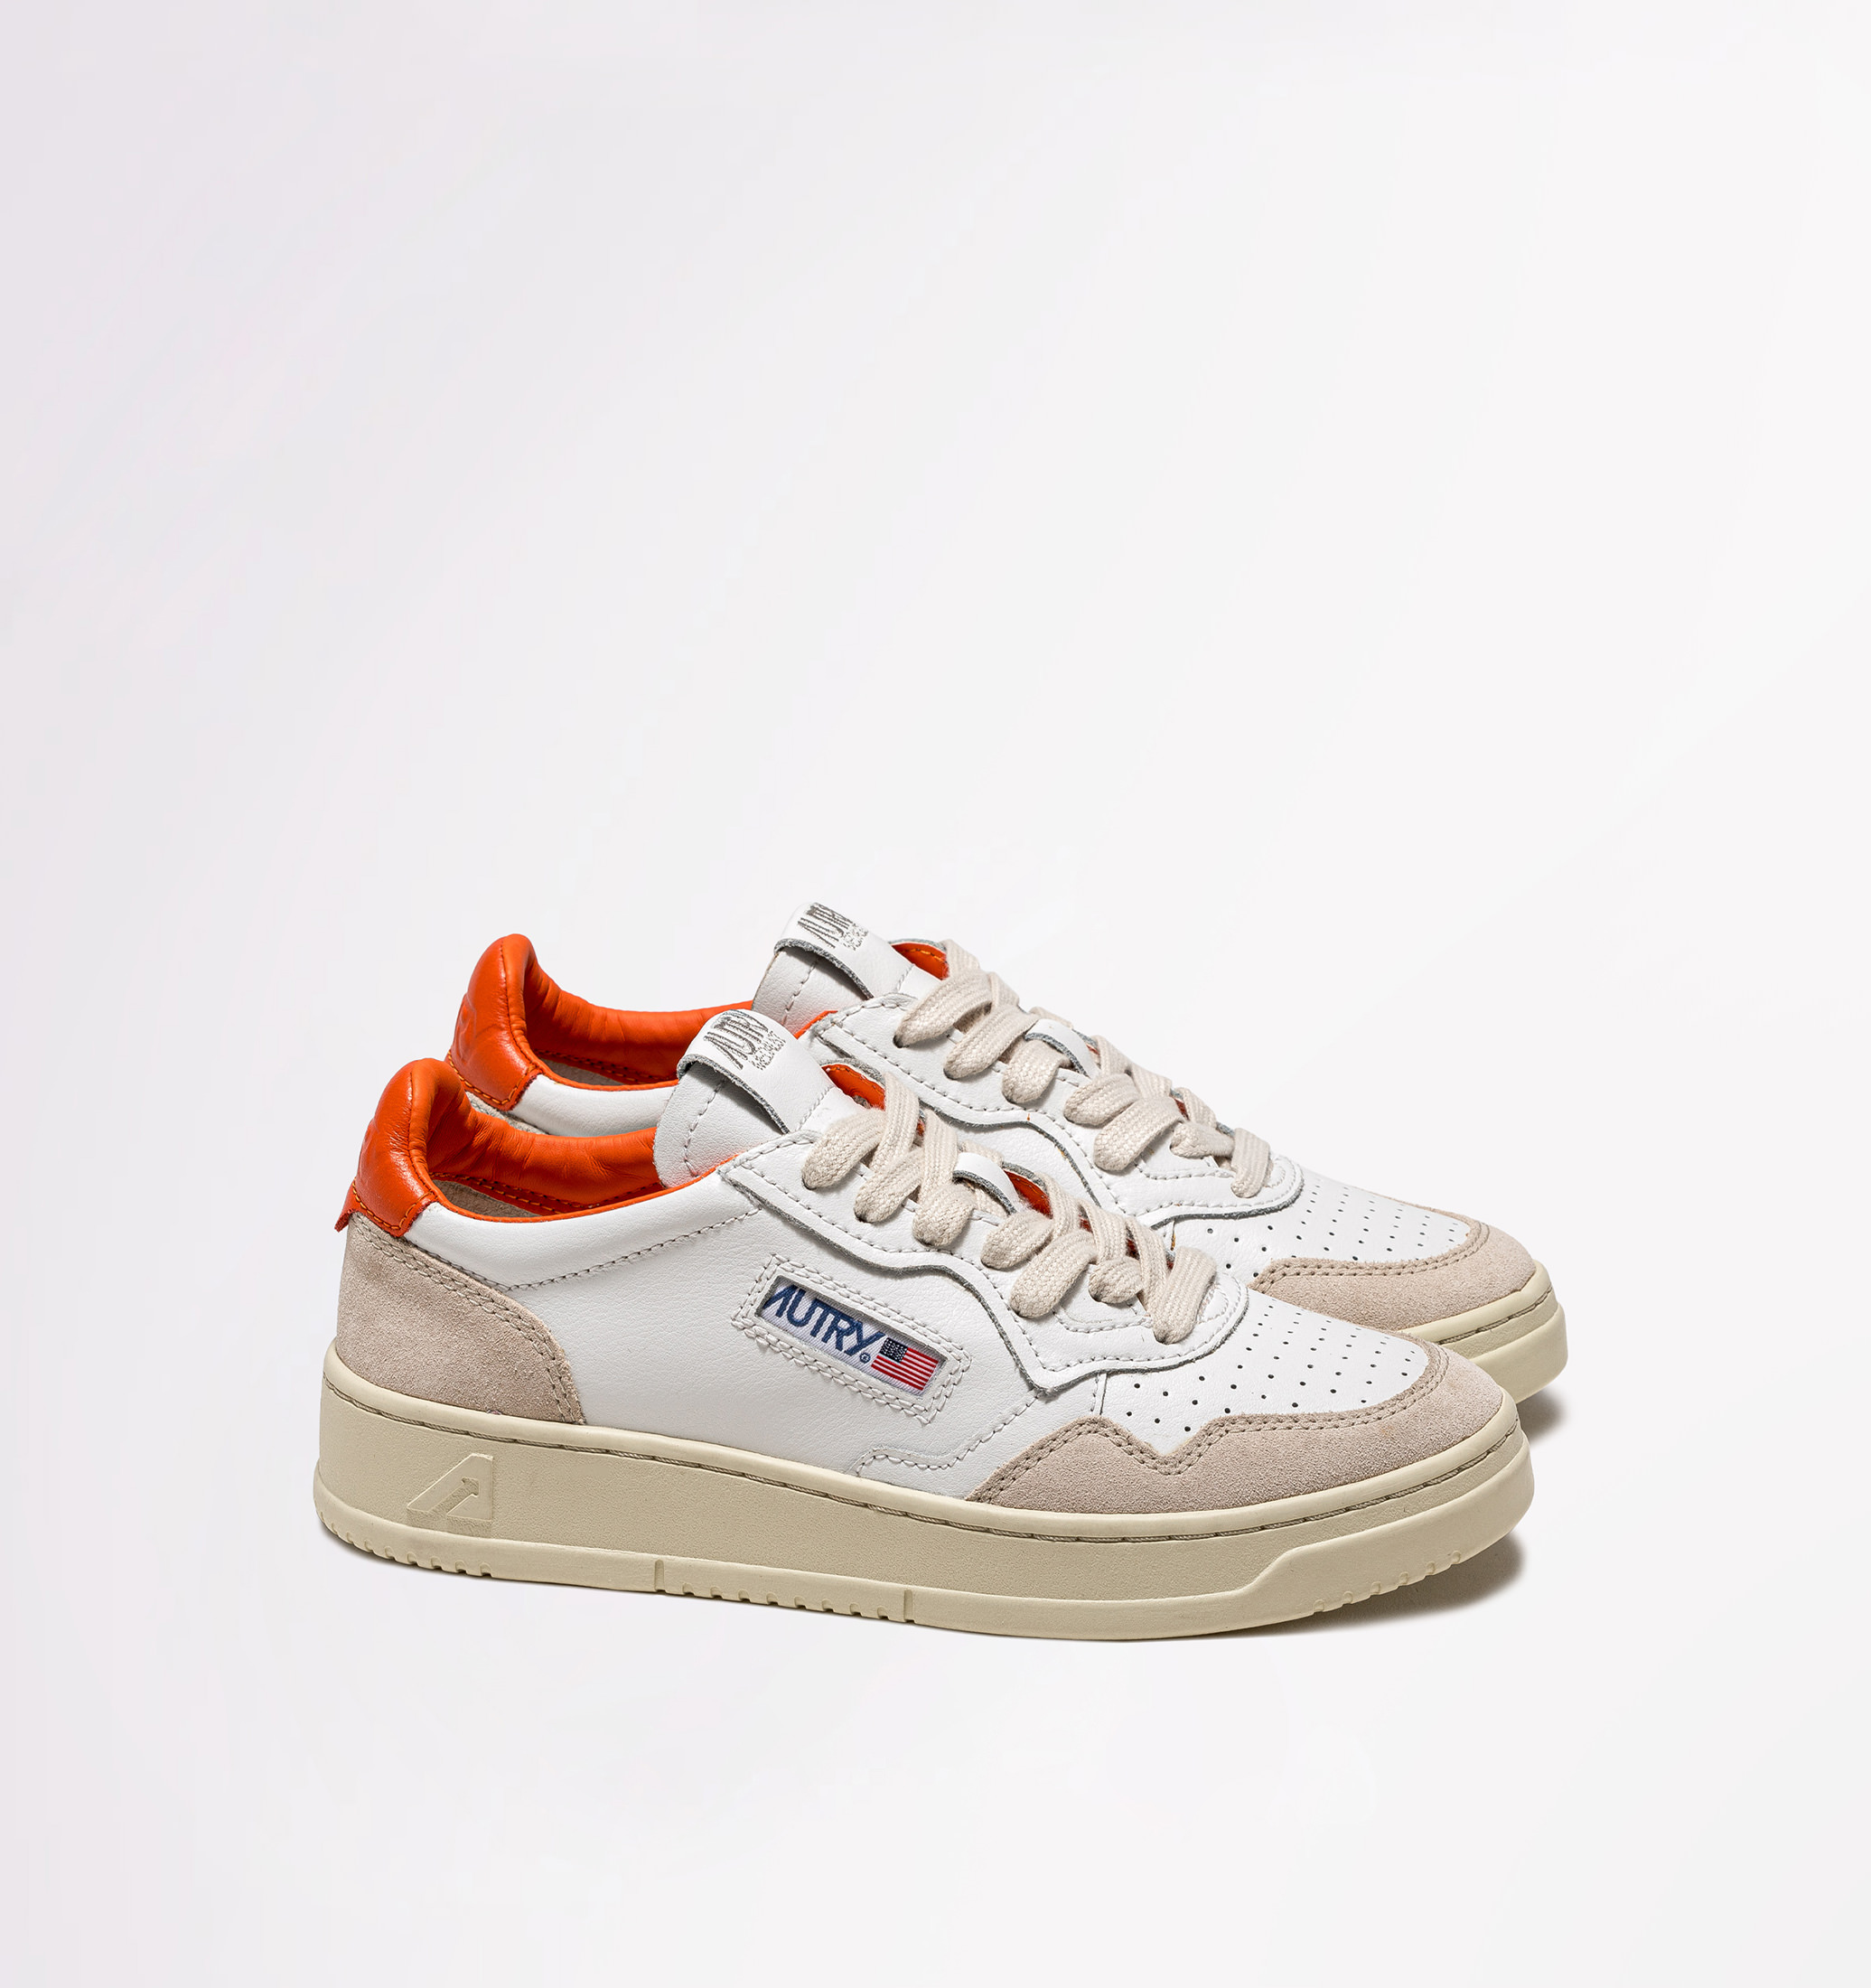 autry-01-low-leather-suede-white-orange-side-both